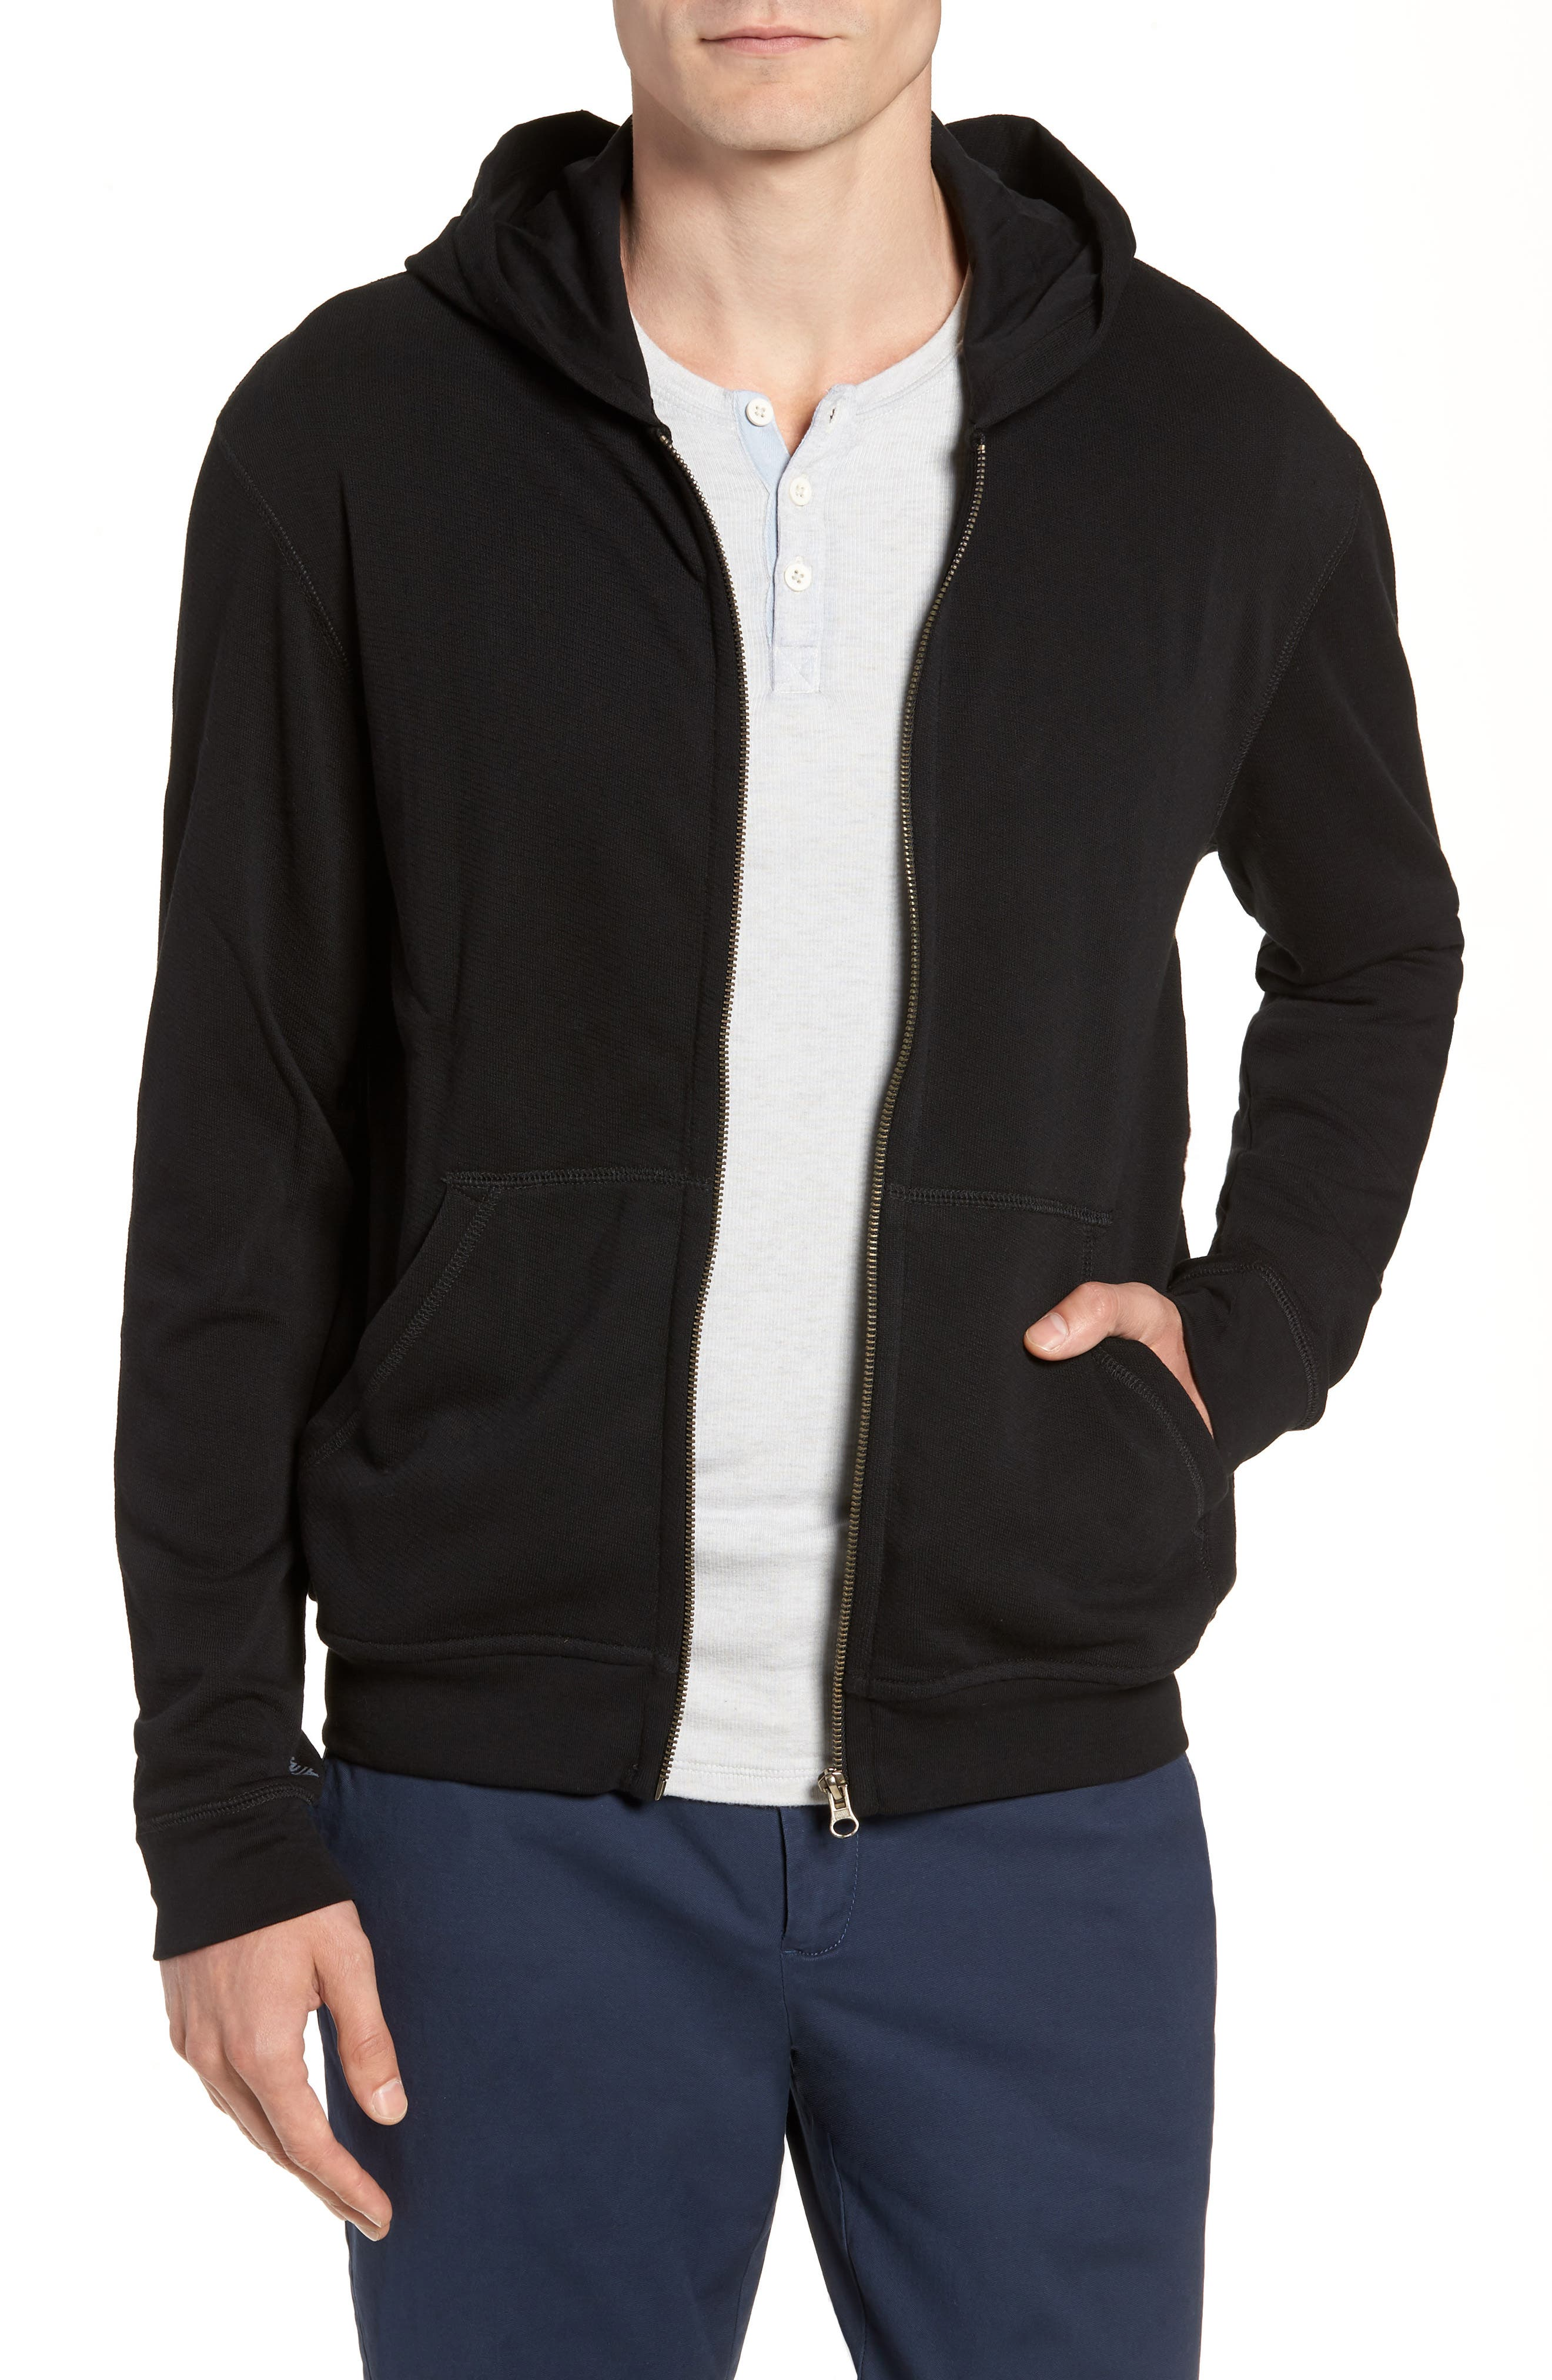 French Terry Zip Hoodie,                             Main thumbnail 1, color,                             Black